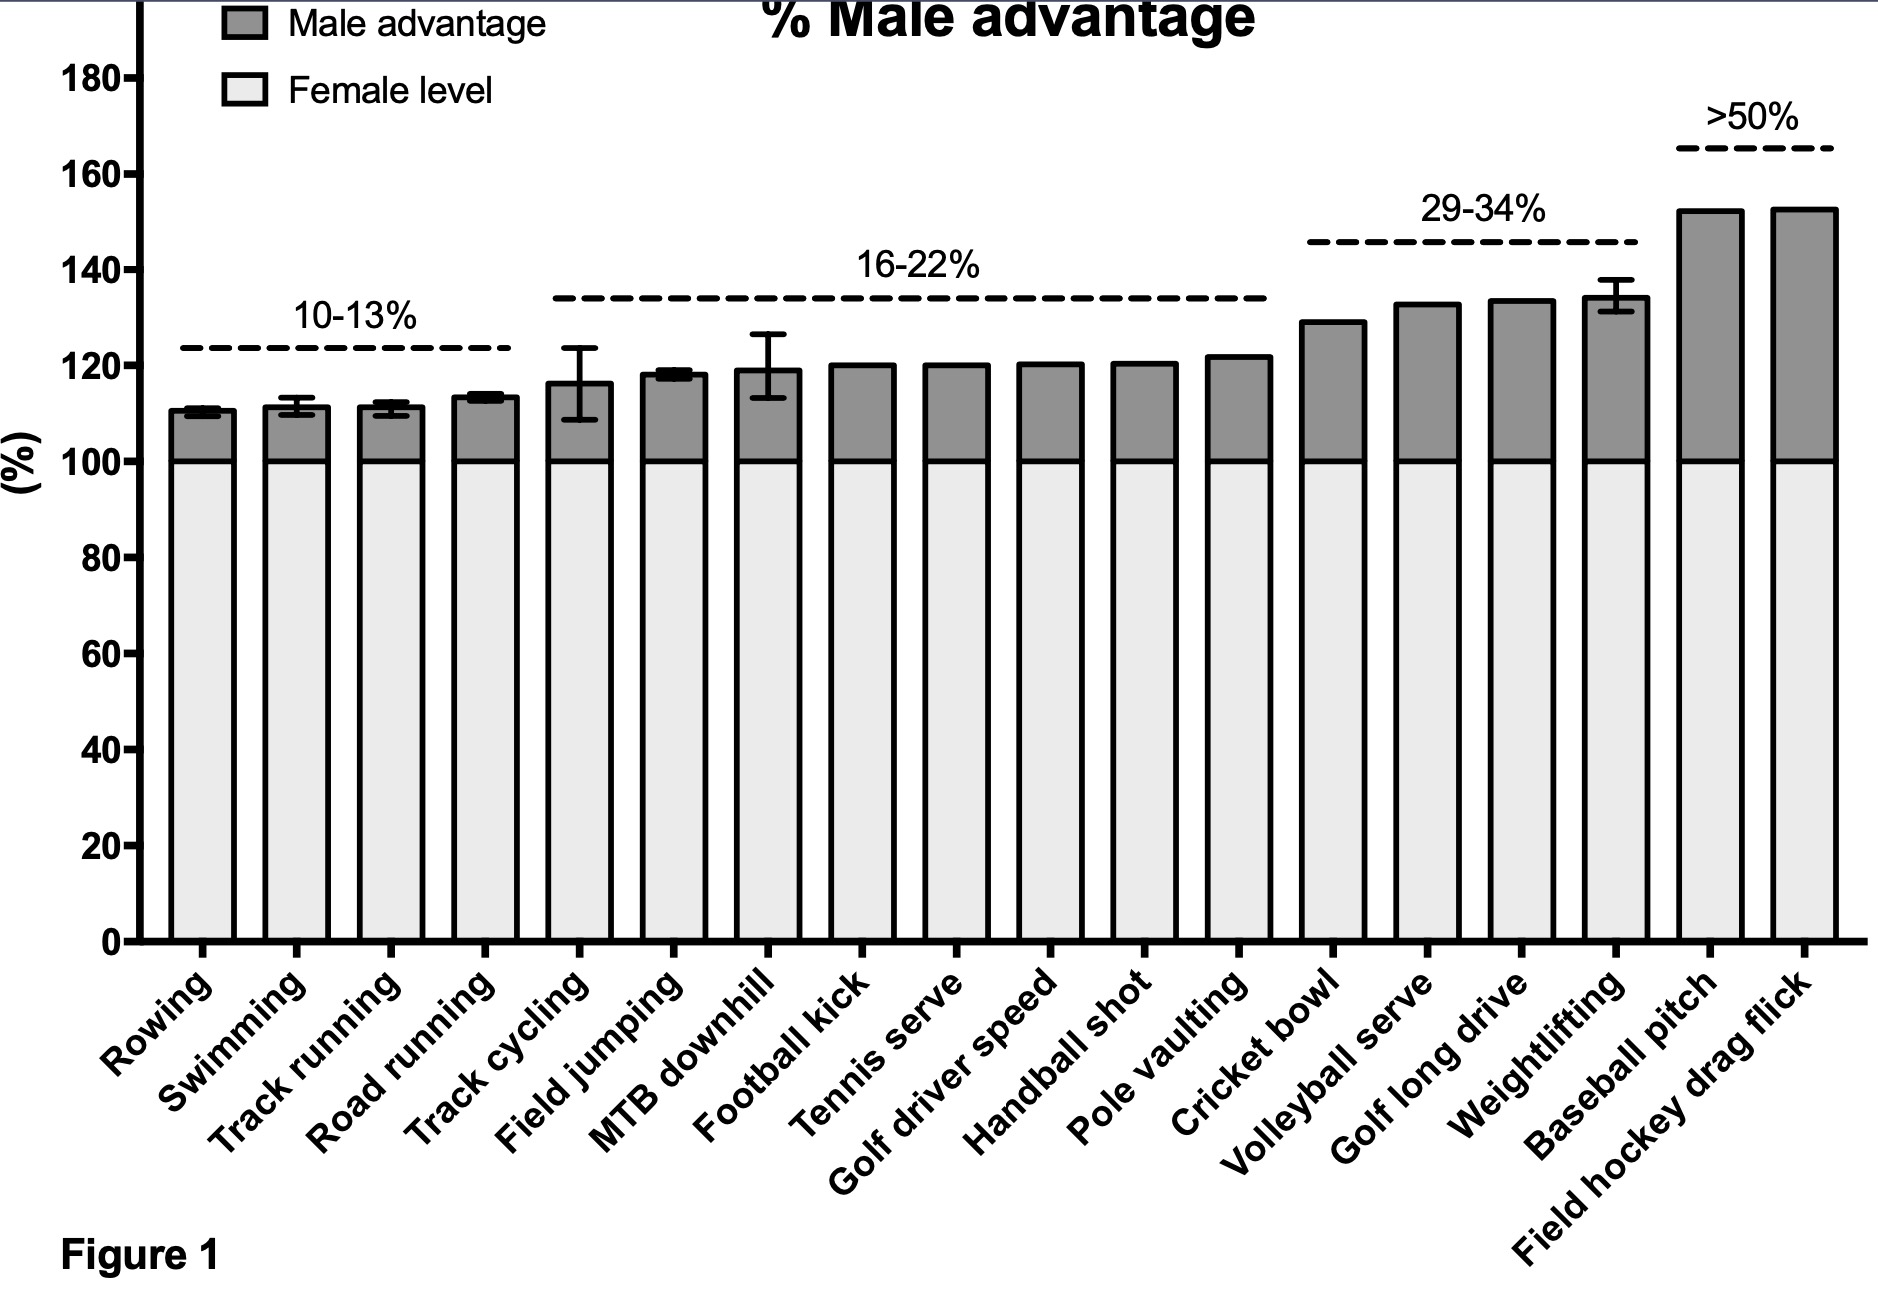 Want an idea of the gap between Males and females in Sport? EdCxWeJXkAAWjTK?format=jpg&name=large